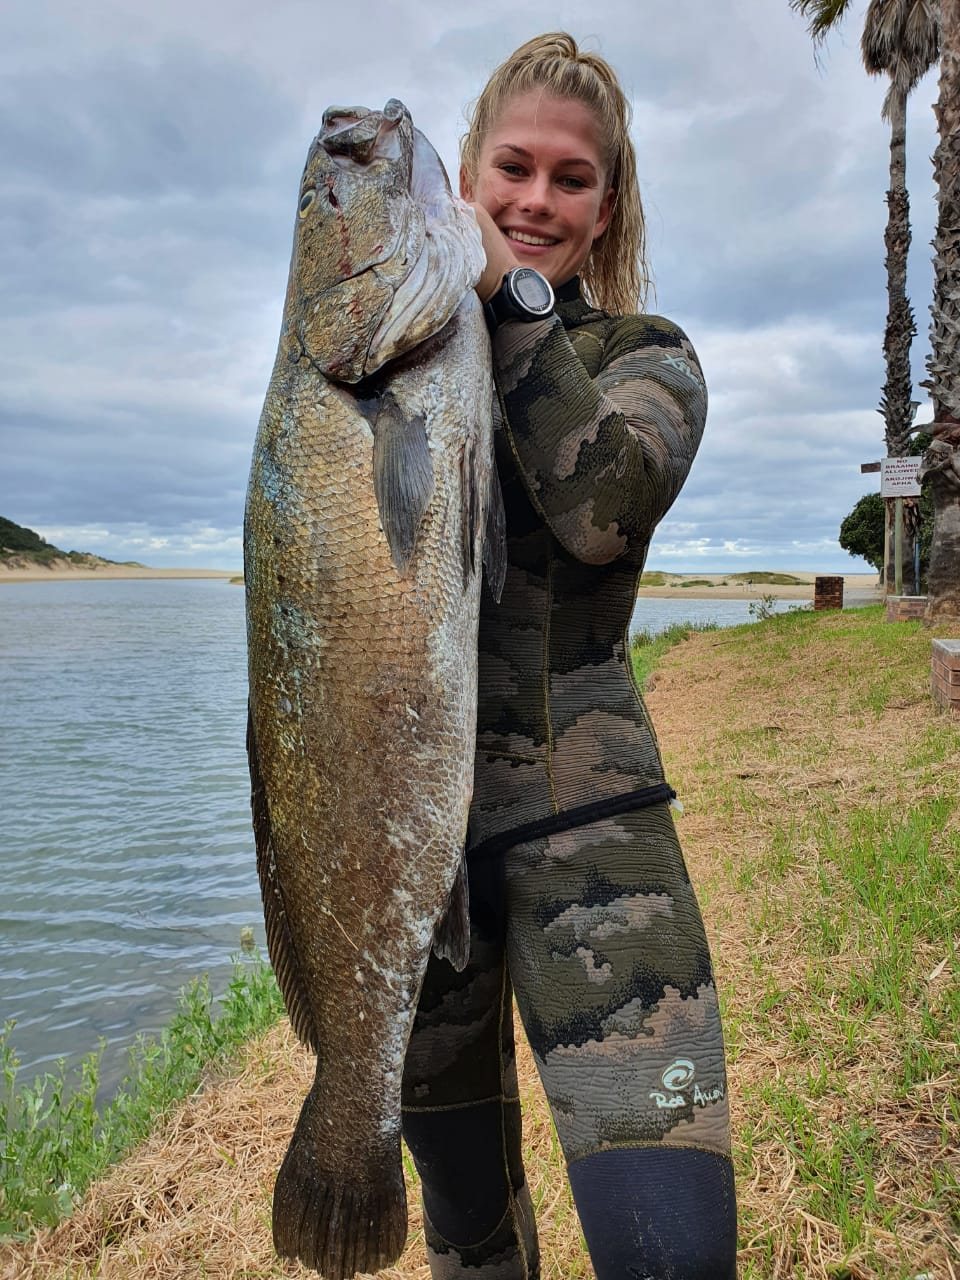 Taylor Rose Toich with the pending South African womens record Daga salmon of 12.05kg